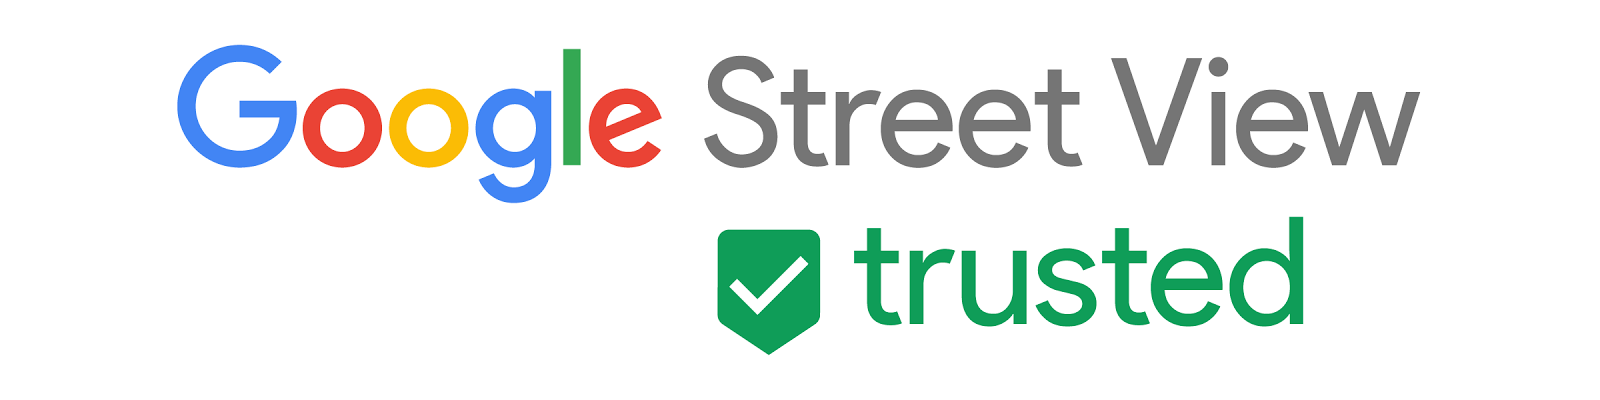 Hire A Google Street View Trusted Pro Today